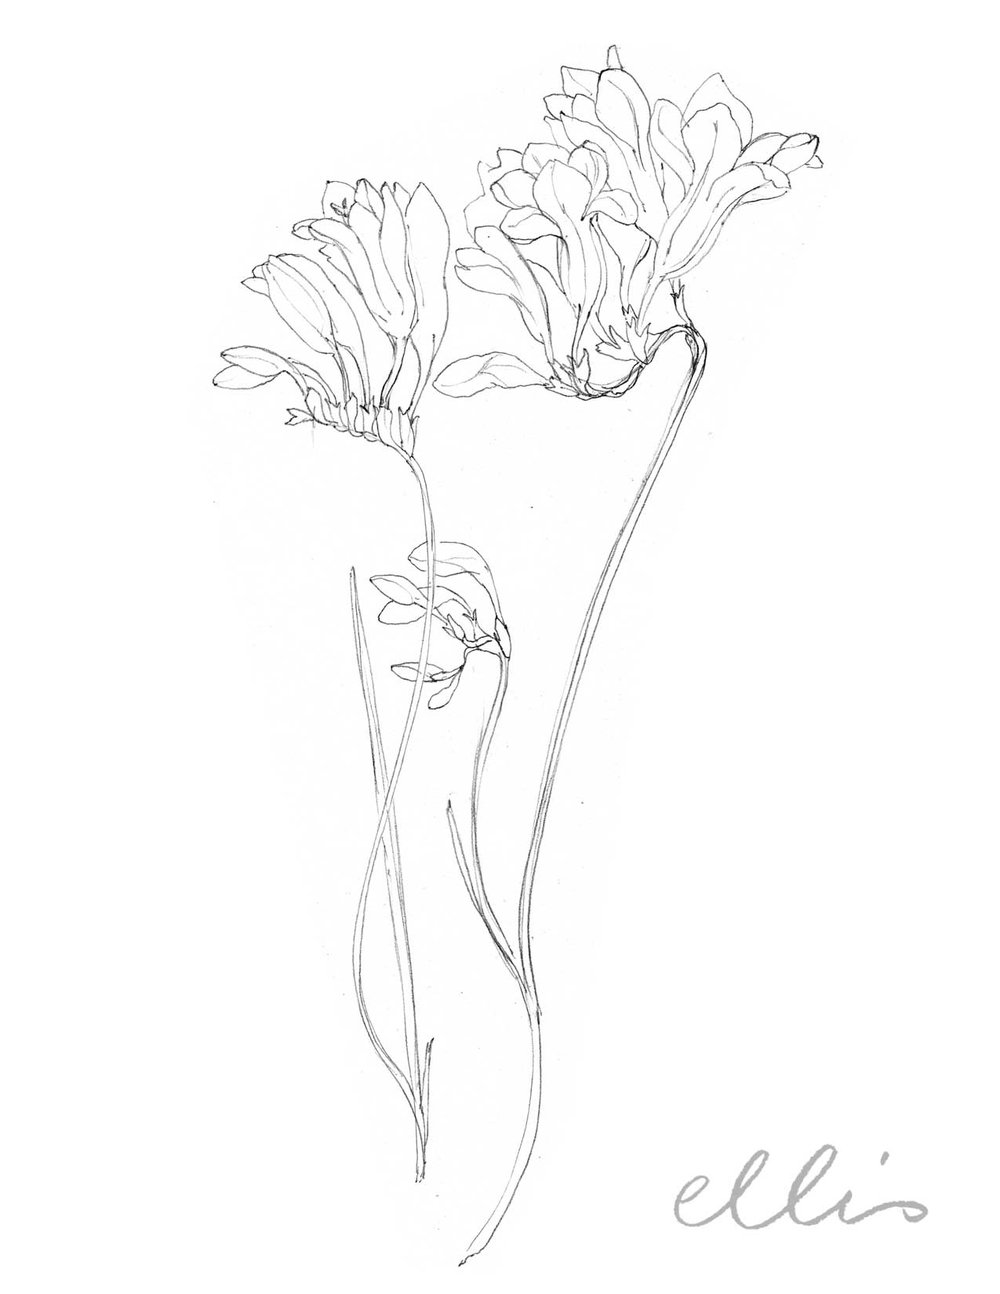 Erin Ellis_100 days project botanical drawings_2013-81.jpg